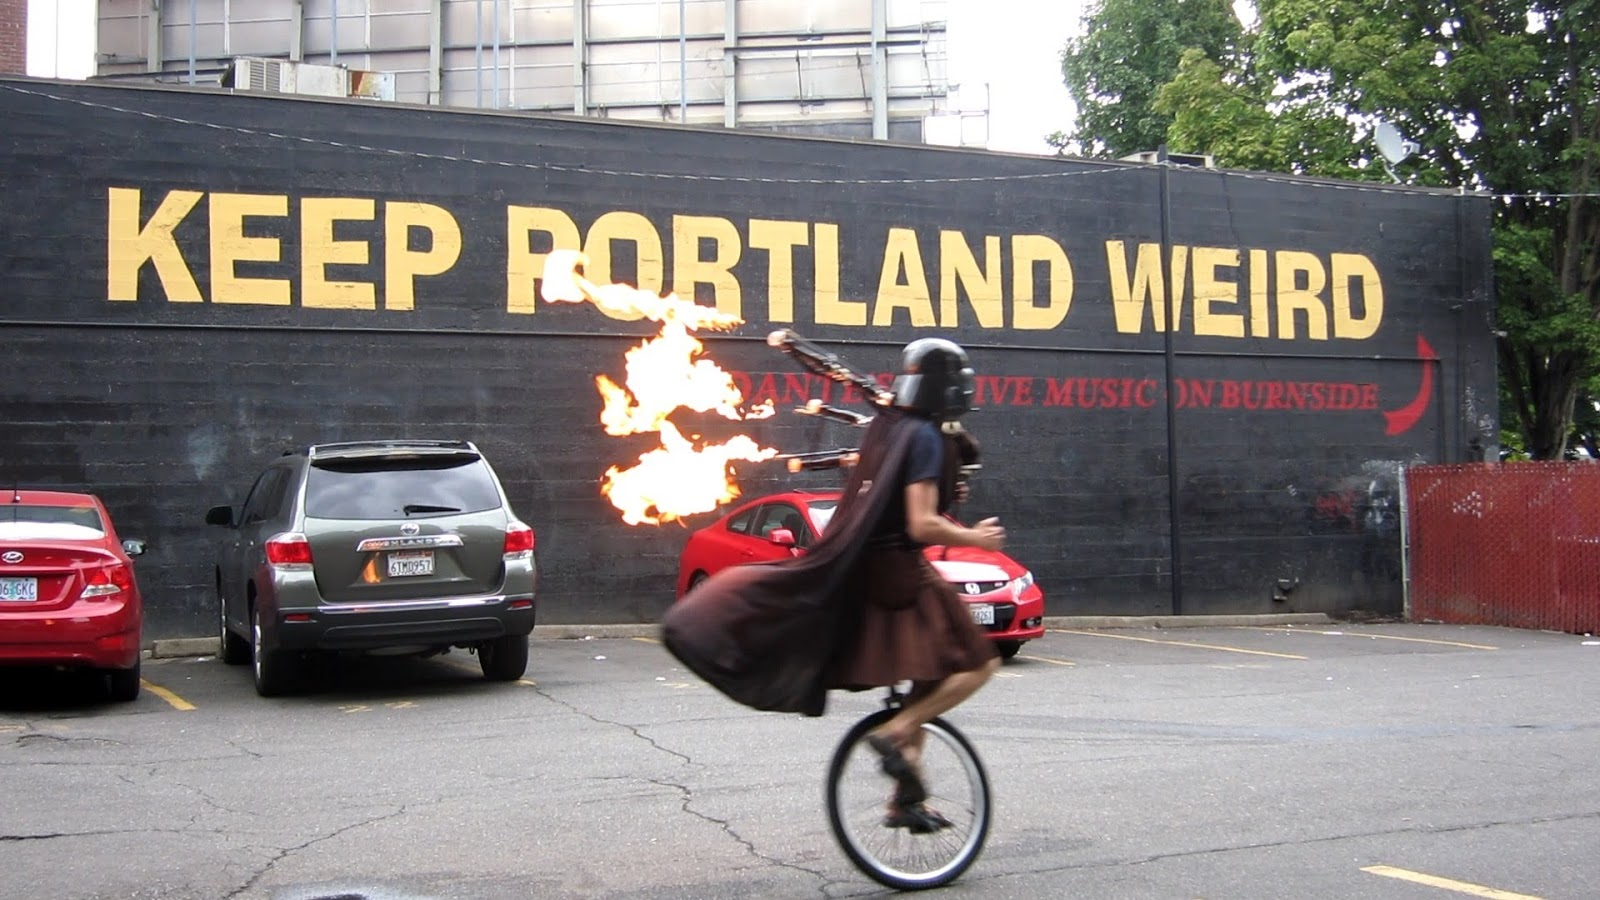 681c5c364 Keeping -- or making -- Portland free would be even better.